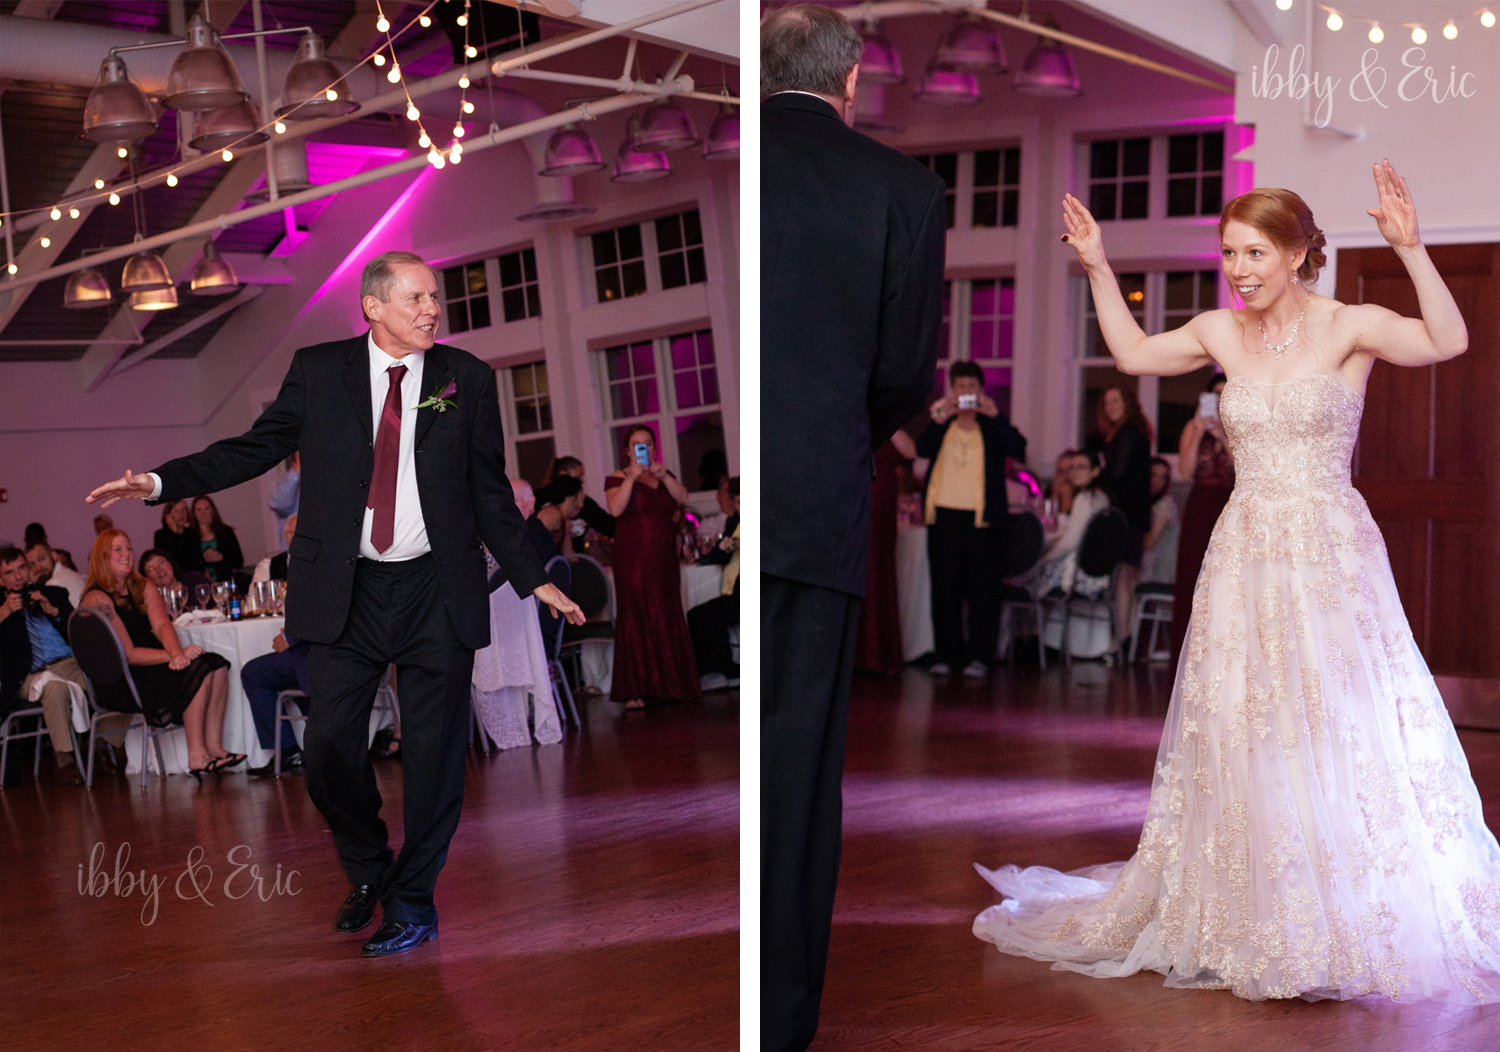 The bride & her dad does the Chicken Dance during the father-daughter dance.